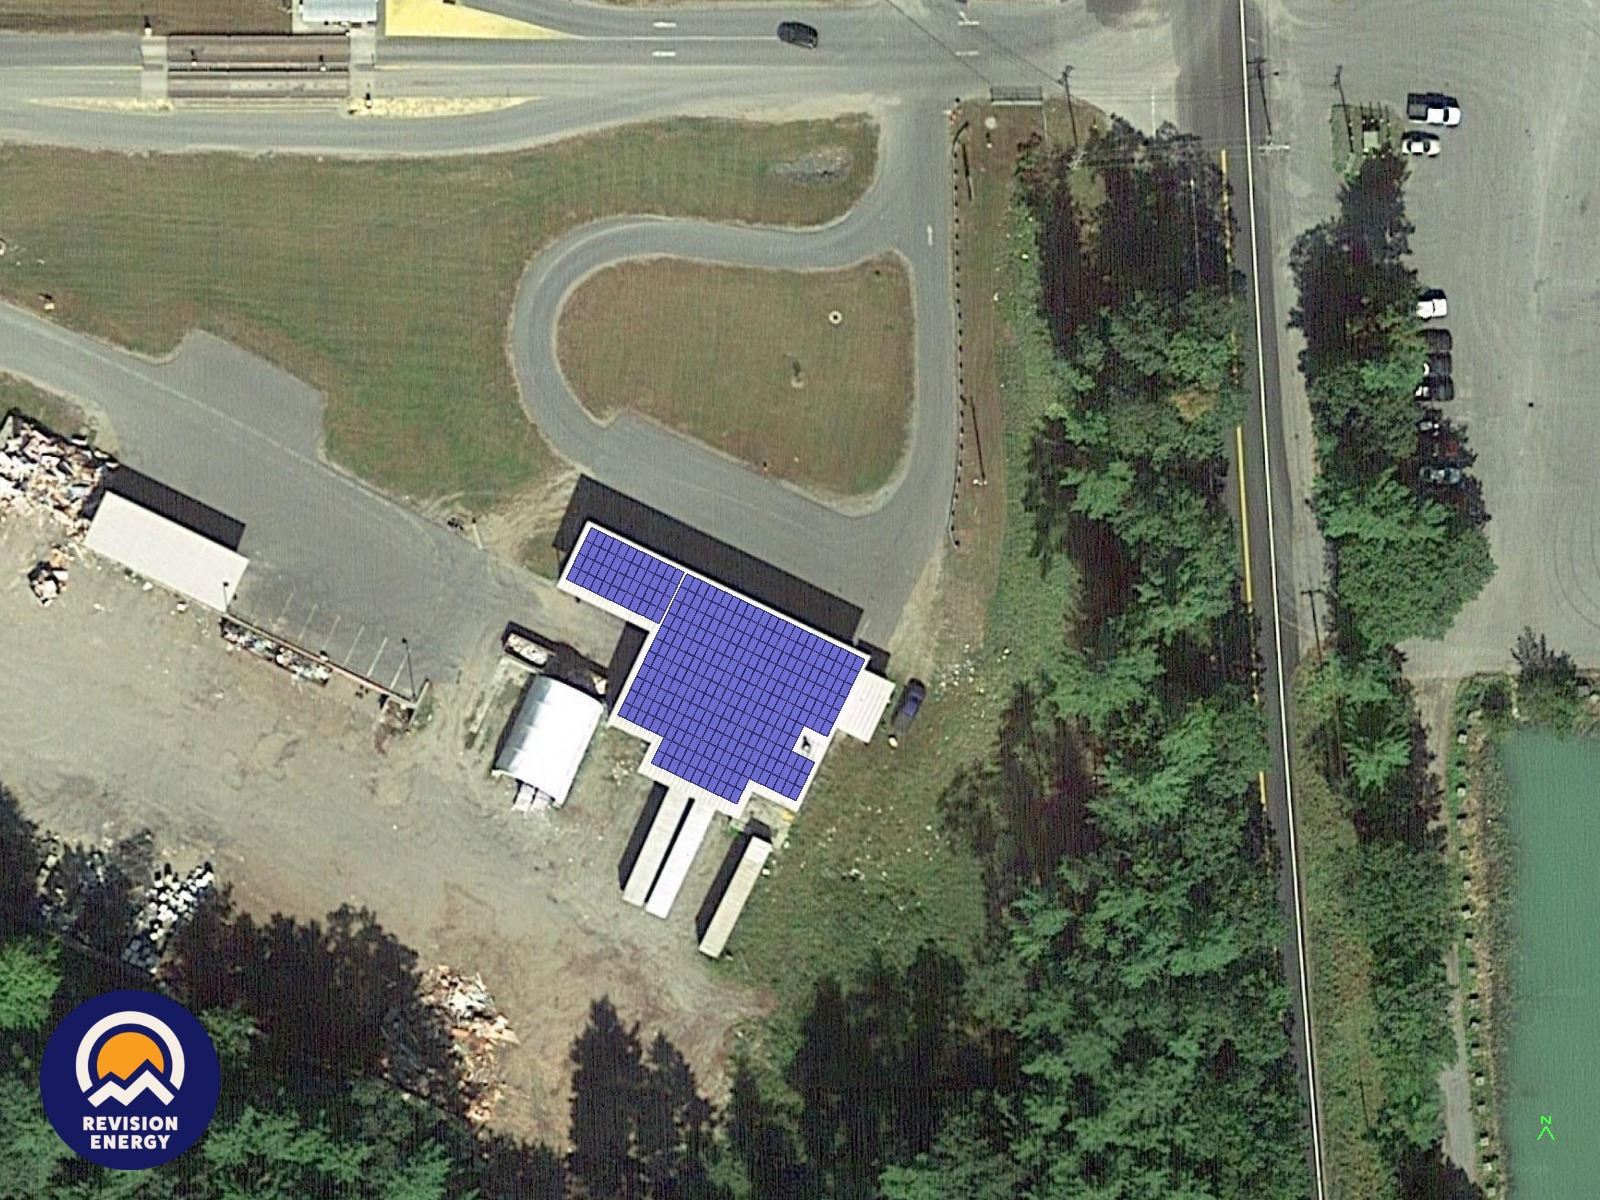 Landfill Recycling Building roof with solar array depiction